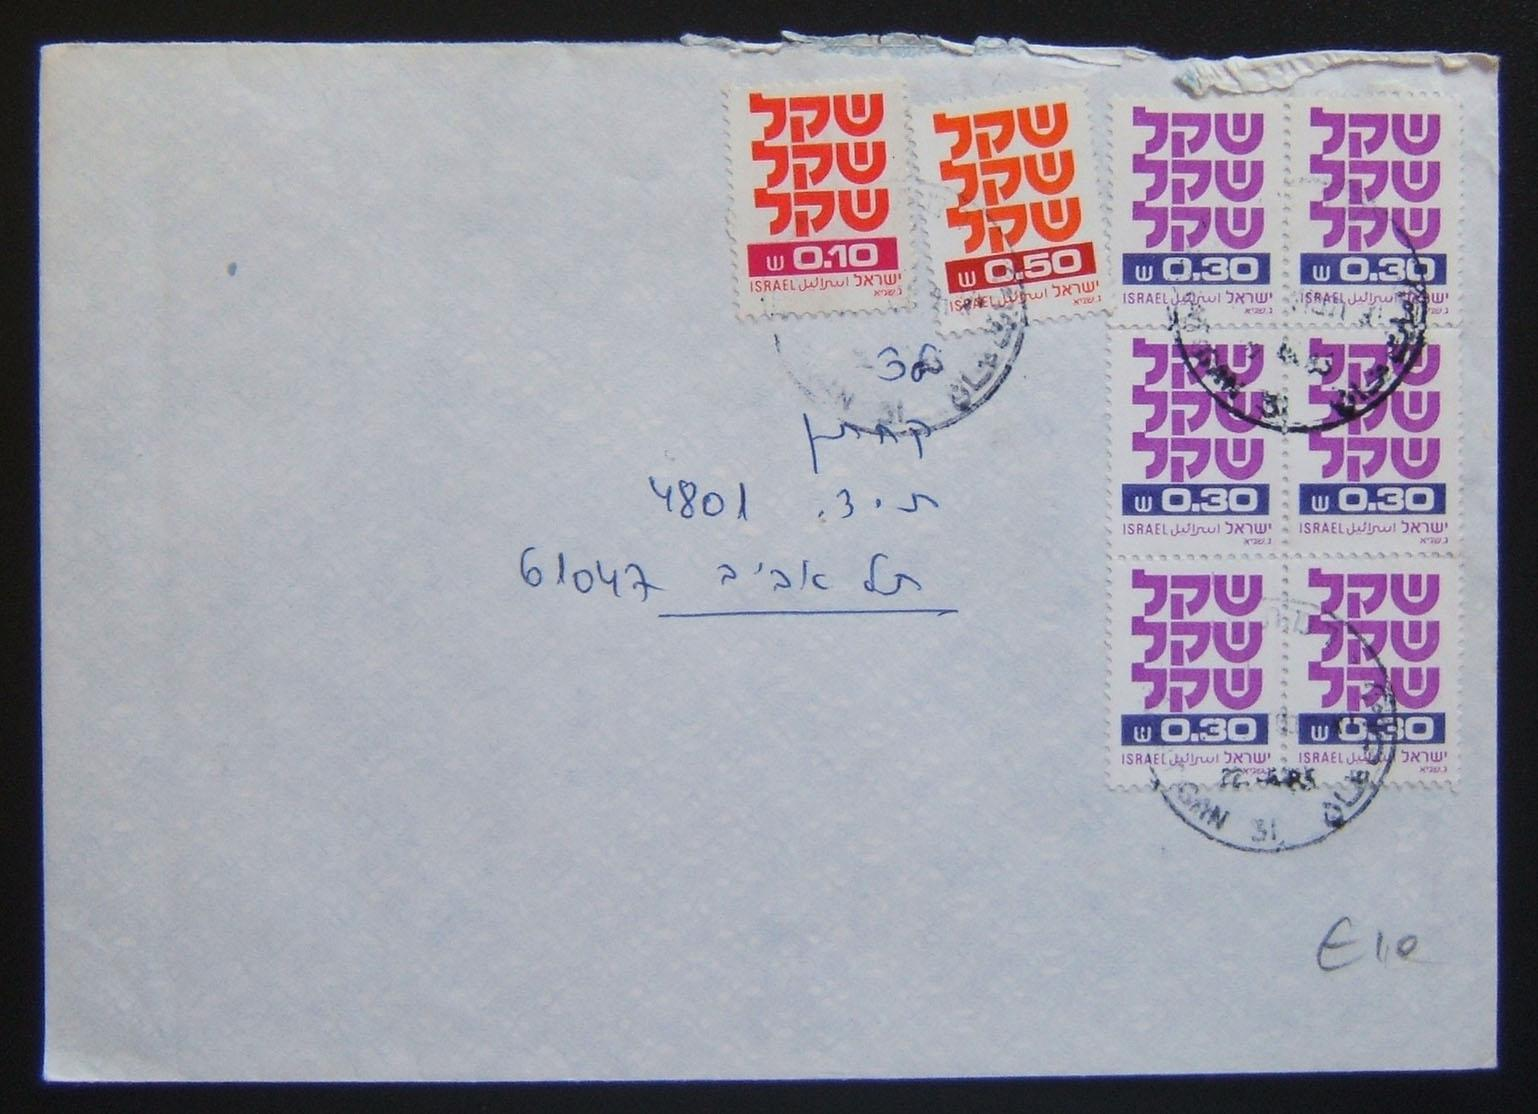 1983 Shekel inflation cover: 22-5-1983 commercial cover ex RAMAT GAN to TLV franked 2.40Sh at the DO-40 period domestic letter rate using 8 stamps: block 6x 0.30Sh & 0.50Sh & 0.10